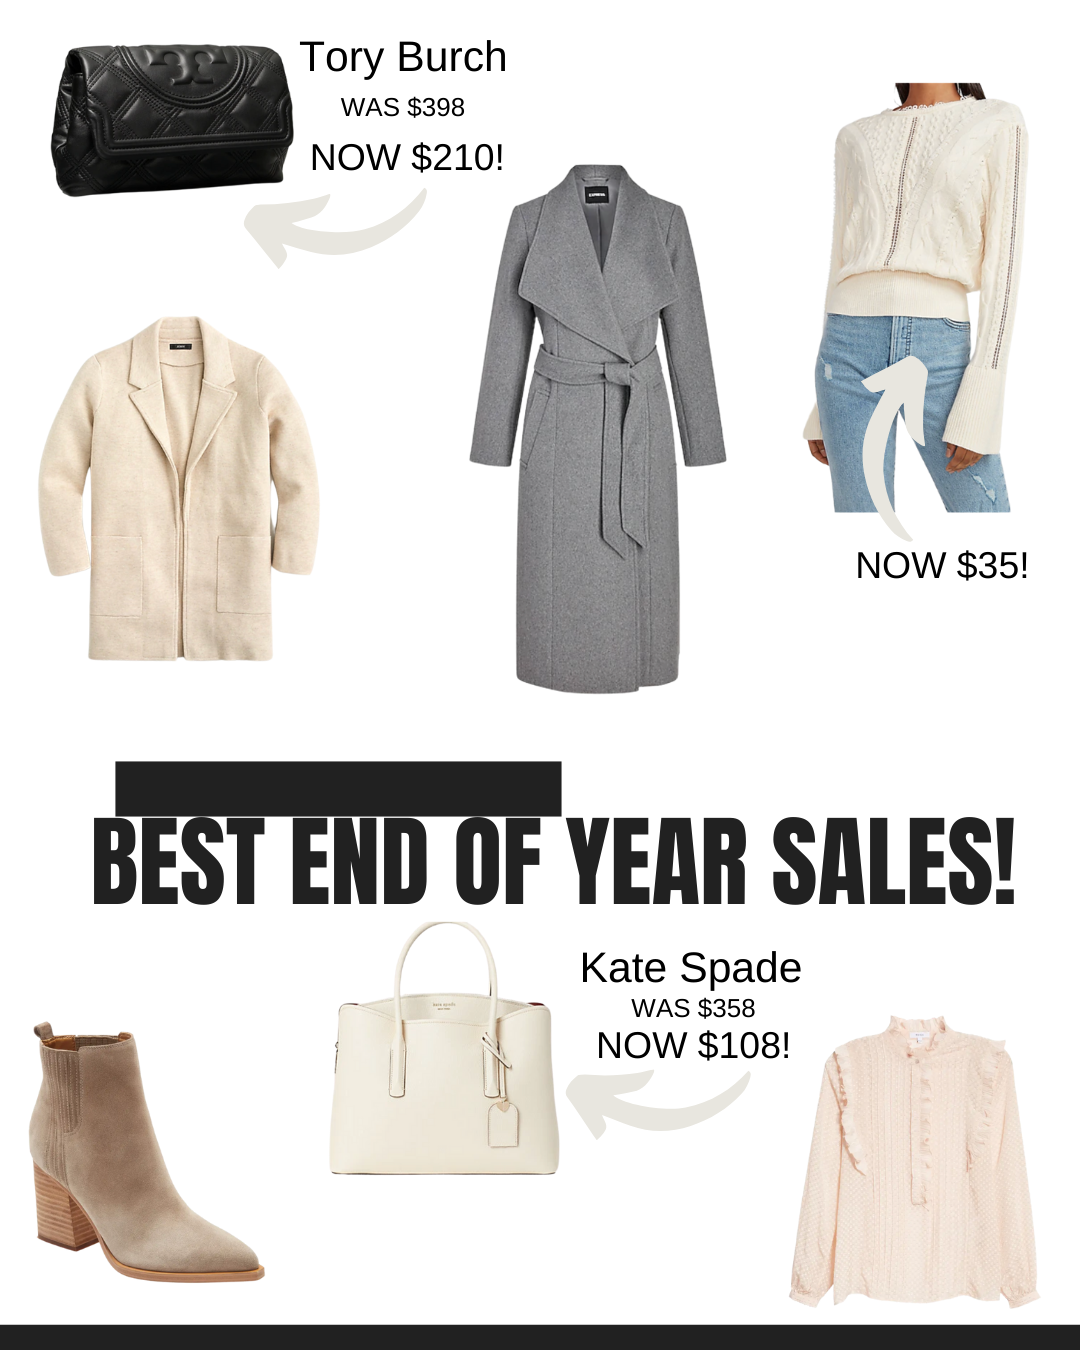 Best End of Year Sales!